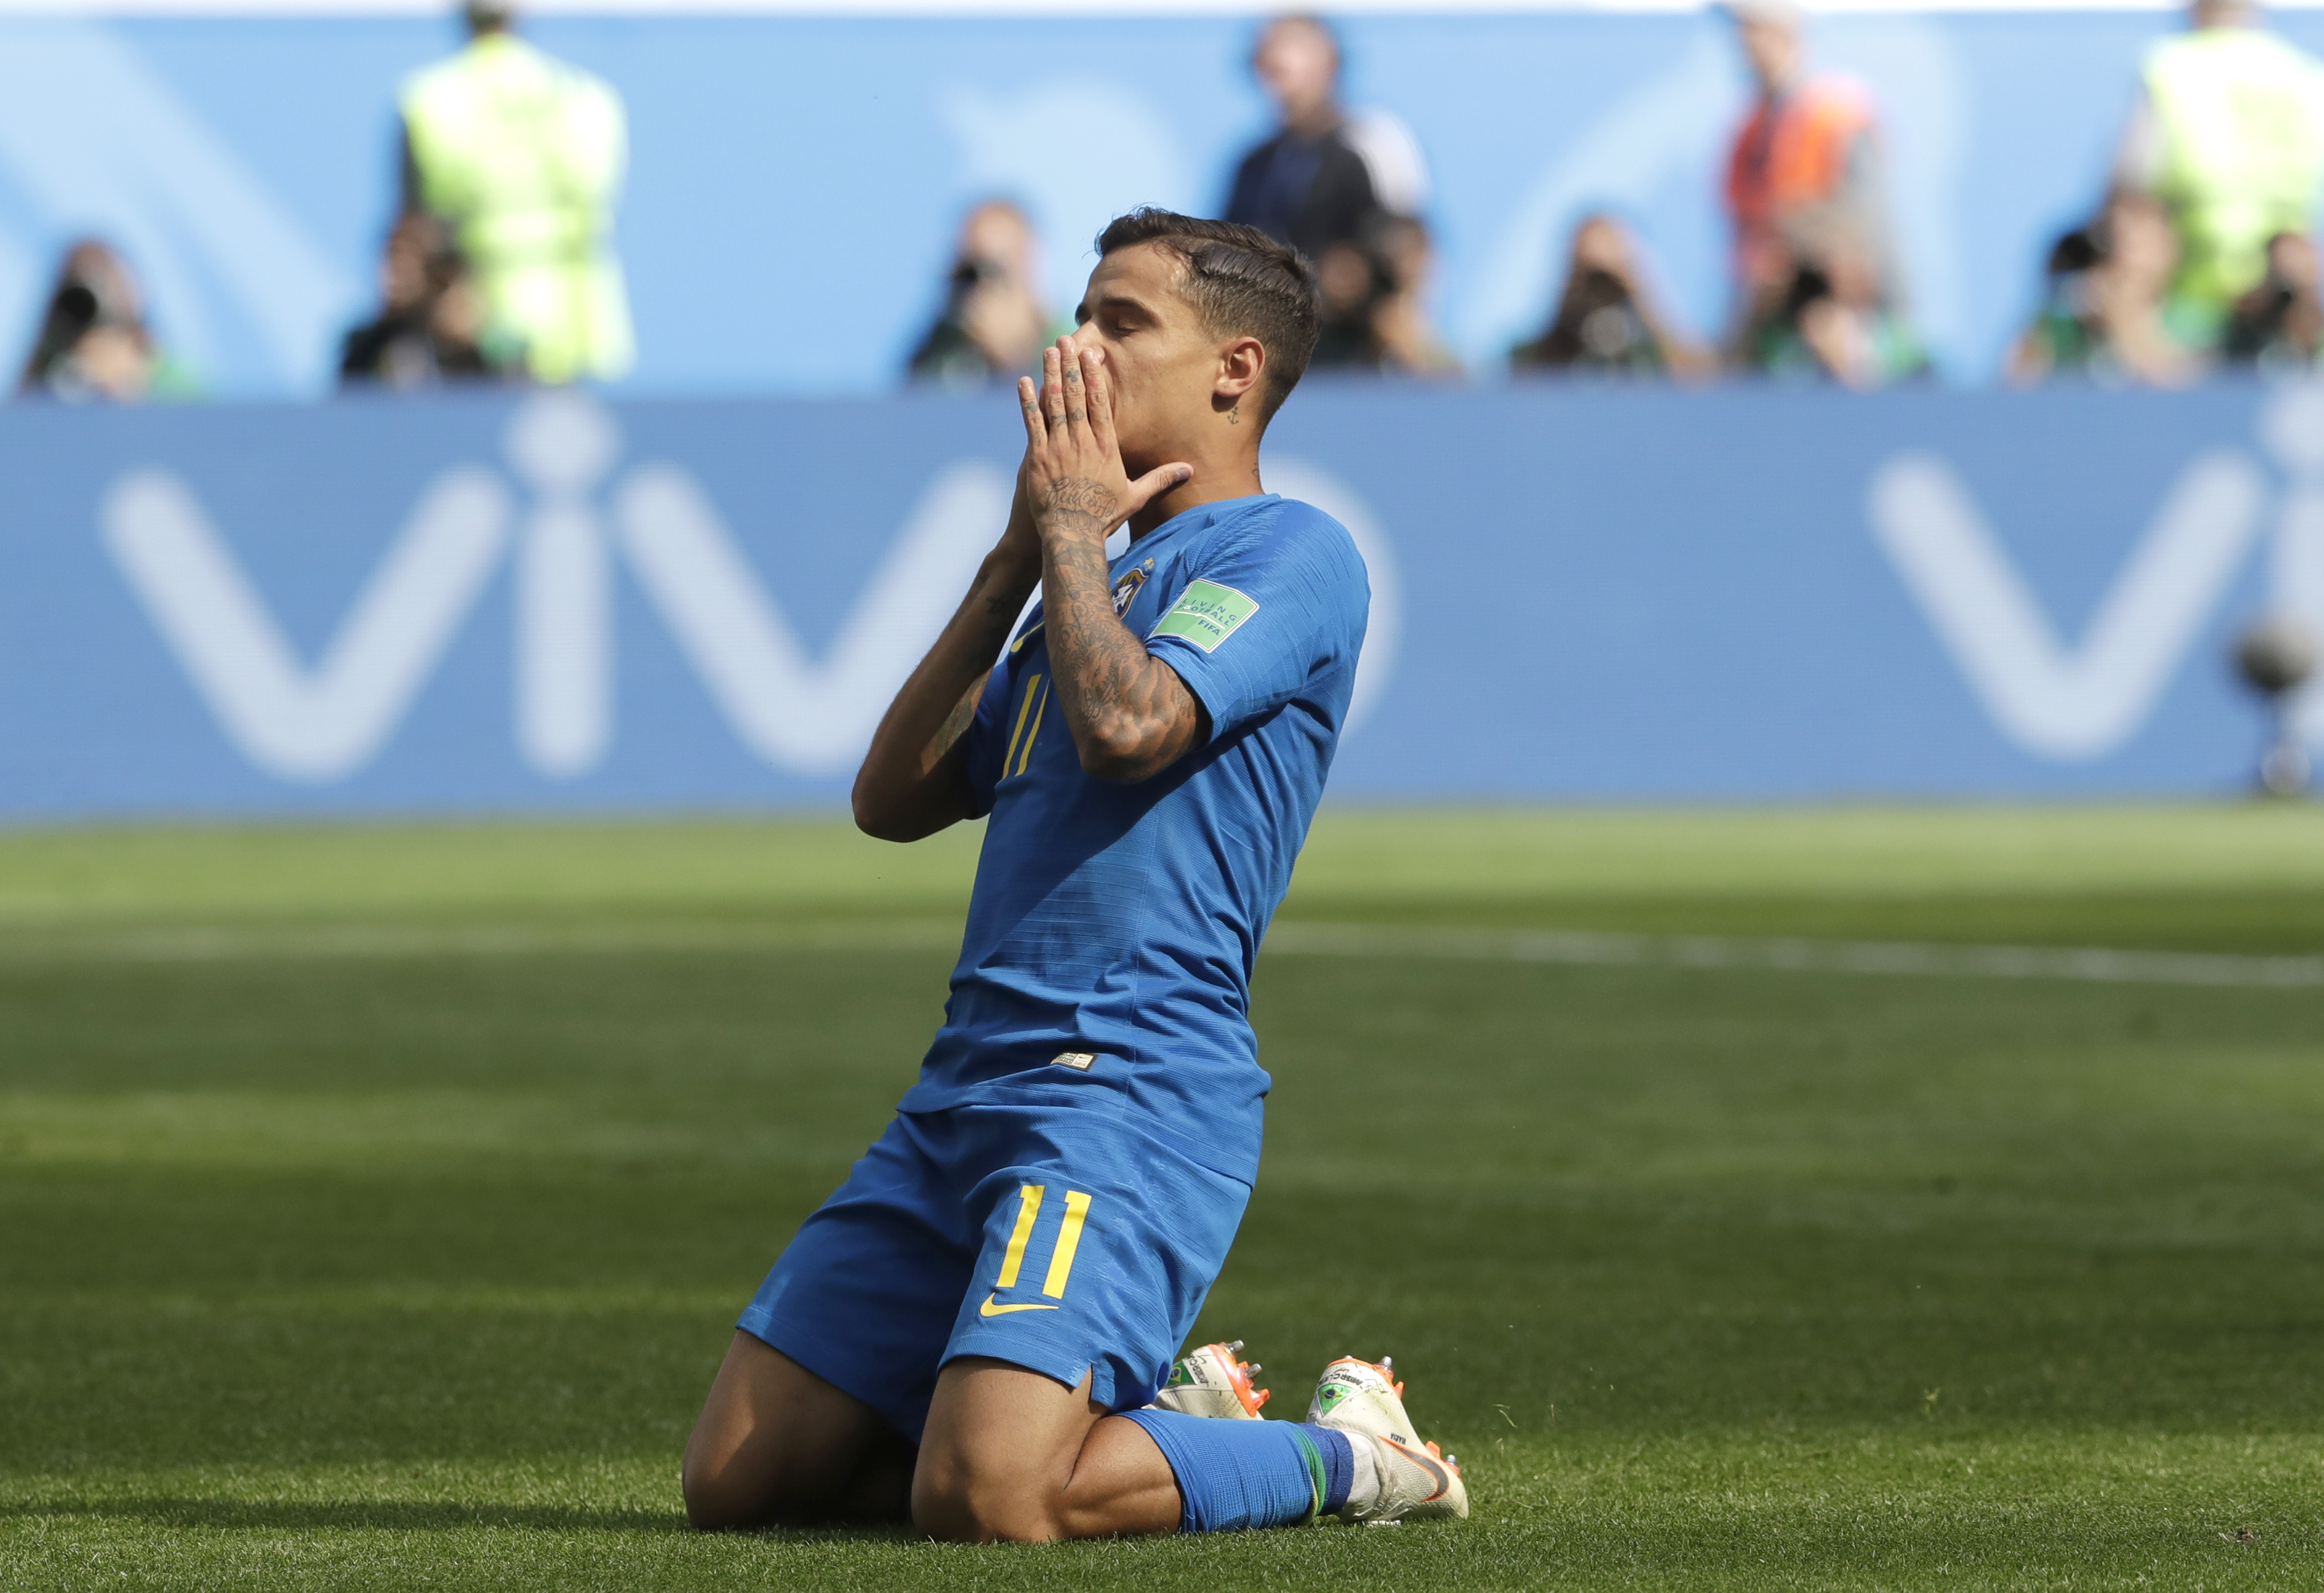 <div class='meta'><div class='origin-logo' data-origin='none'></div><span class='caption-text' data-credit='Petr David Josek/AP Photo'>Brazil's Philippe Coutinho reacts after missing an opportunity to score during the group E match between Brazil and Costa Rica in the St. Petersburg Stadium on June 22.</span></div>